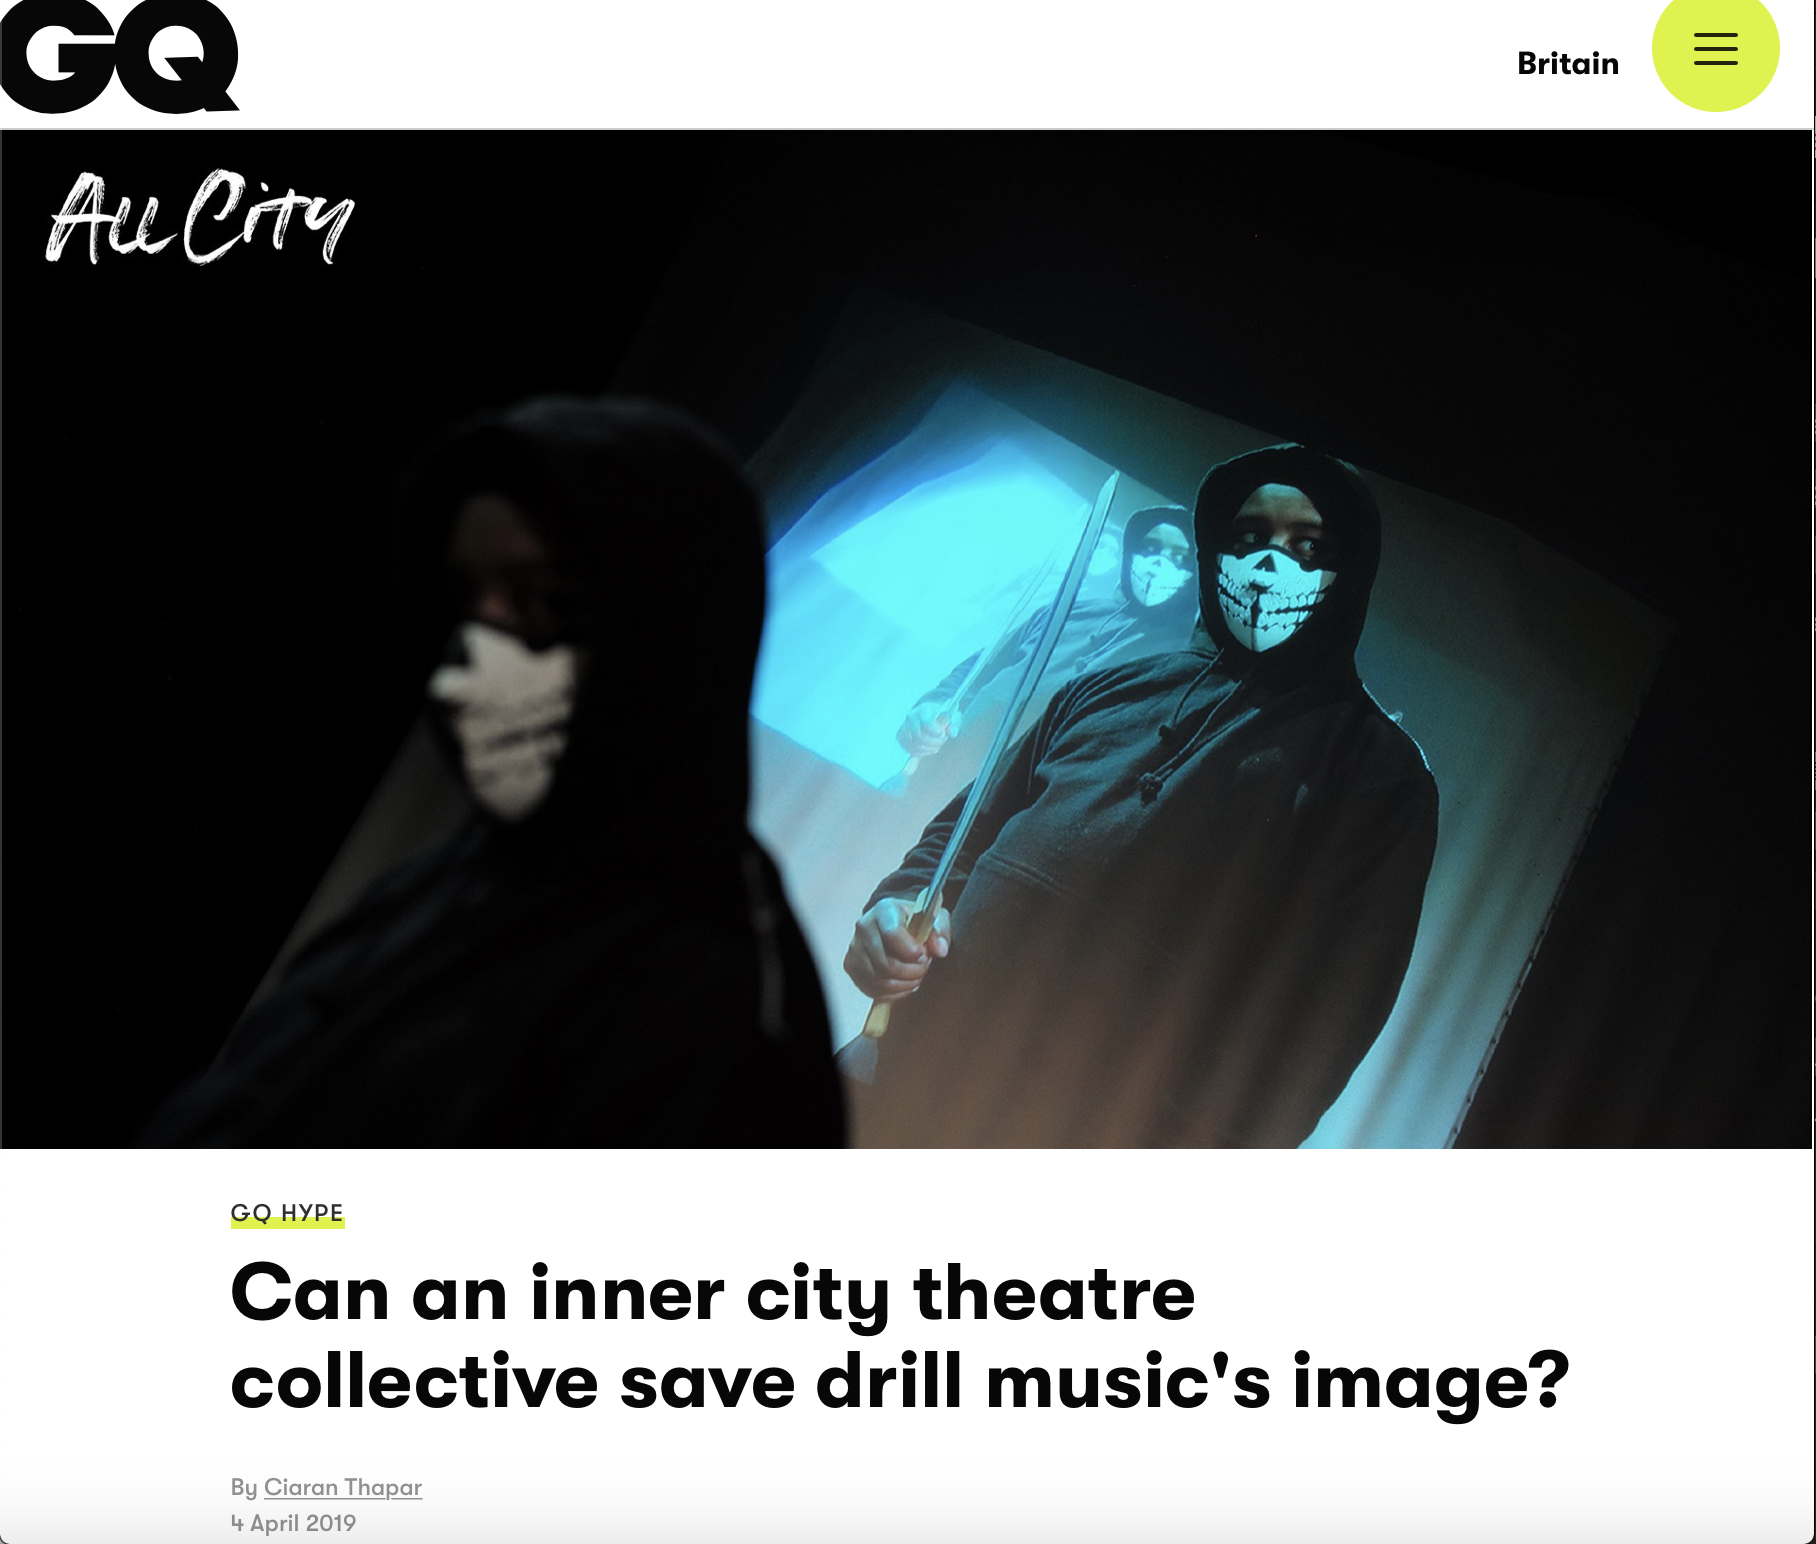 Read about HighRise Theatre's newest work in GQ -  #UKDRILLPROJECT currently in development